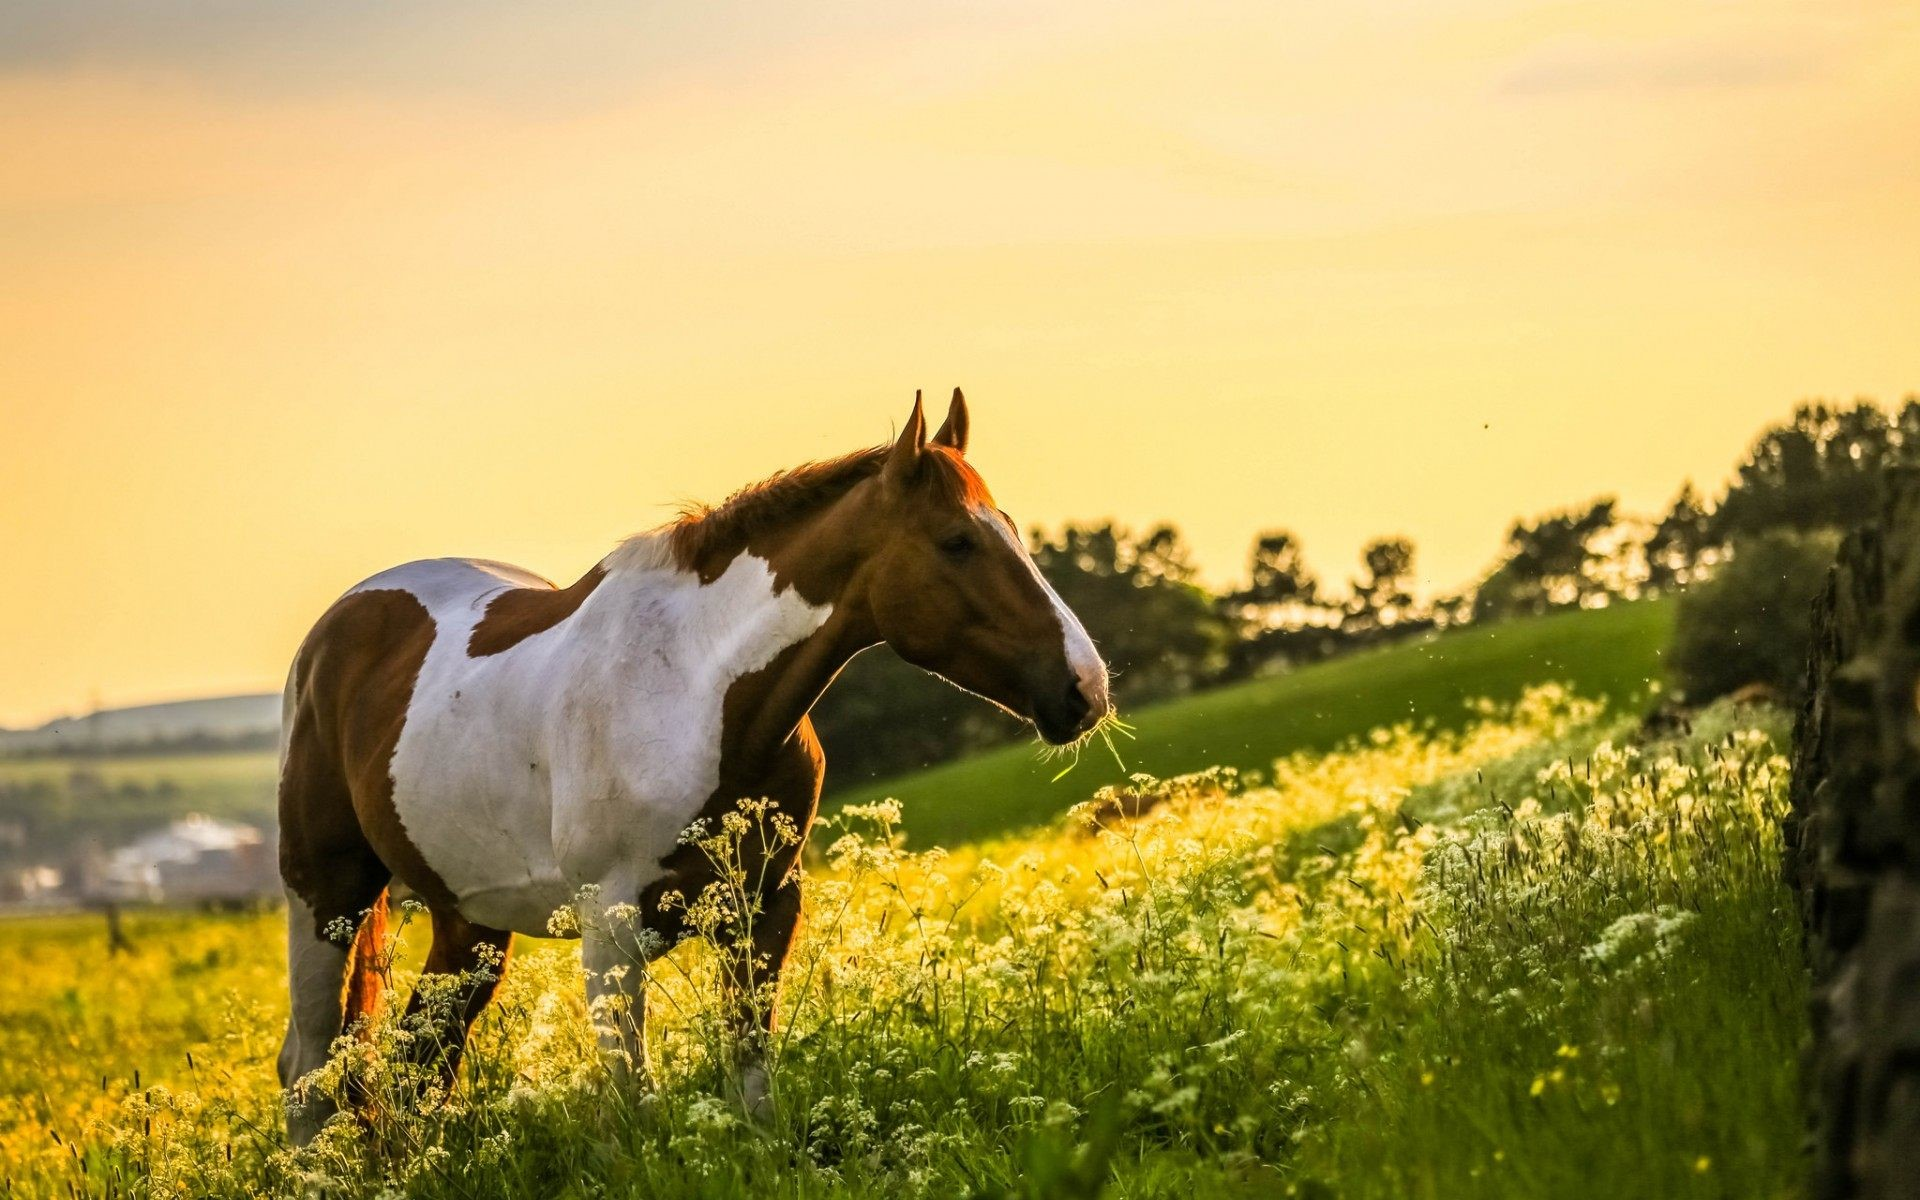 horse wallpaper,horse,people in nature,pasture,mustang horse,grassland